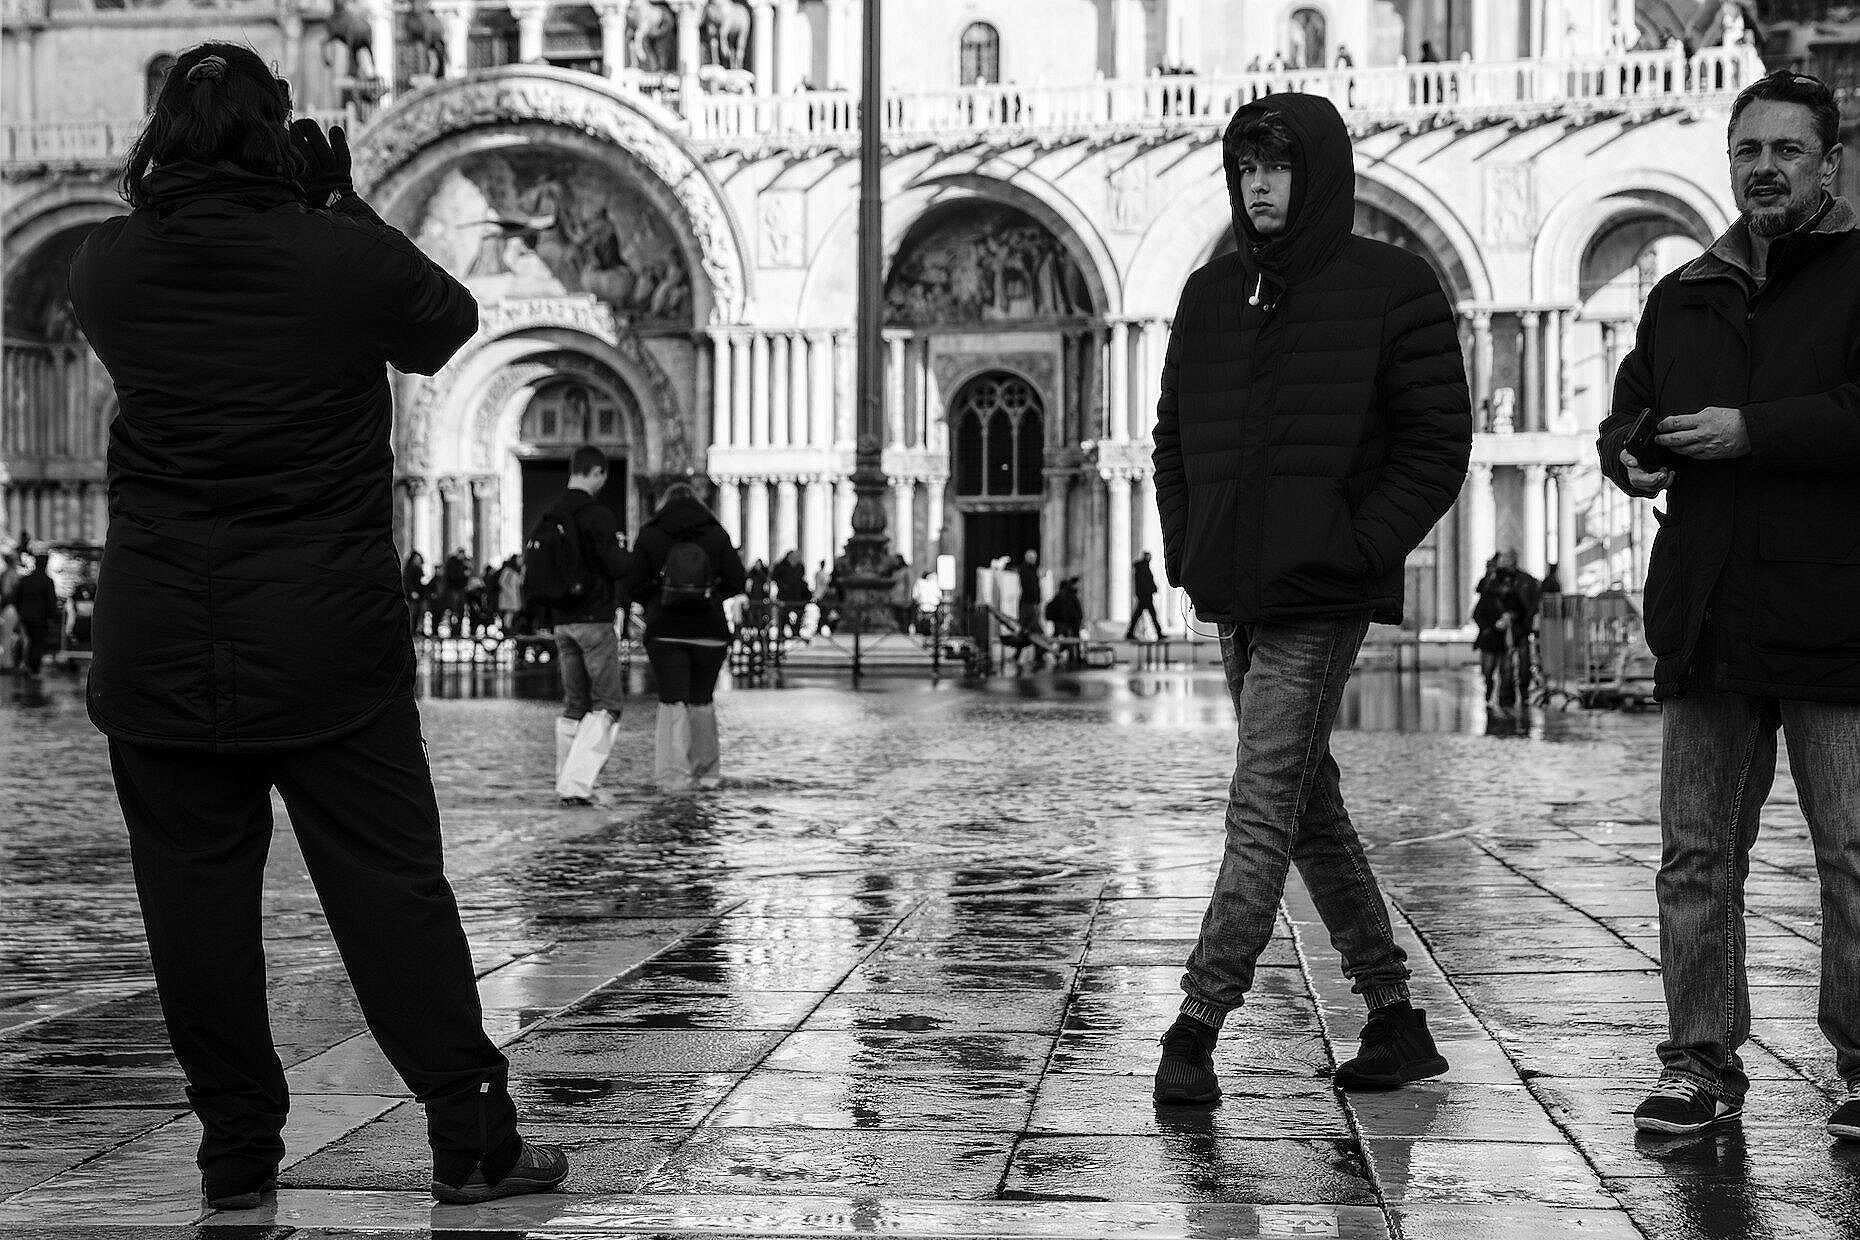 People mulling around in St. Mark's square